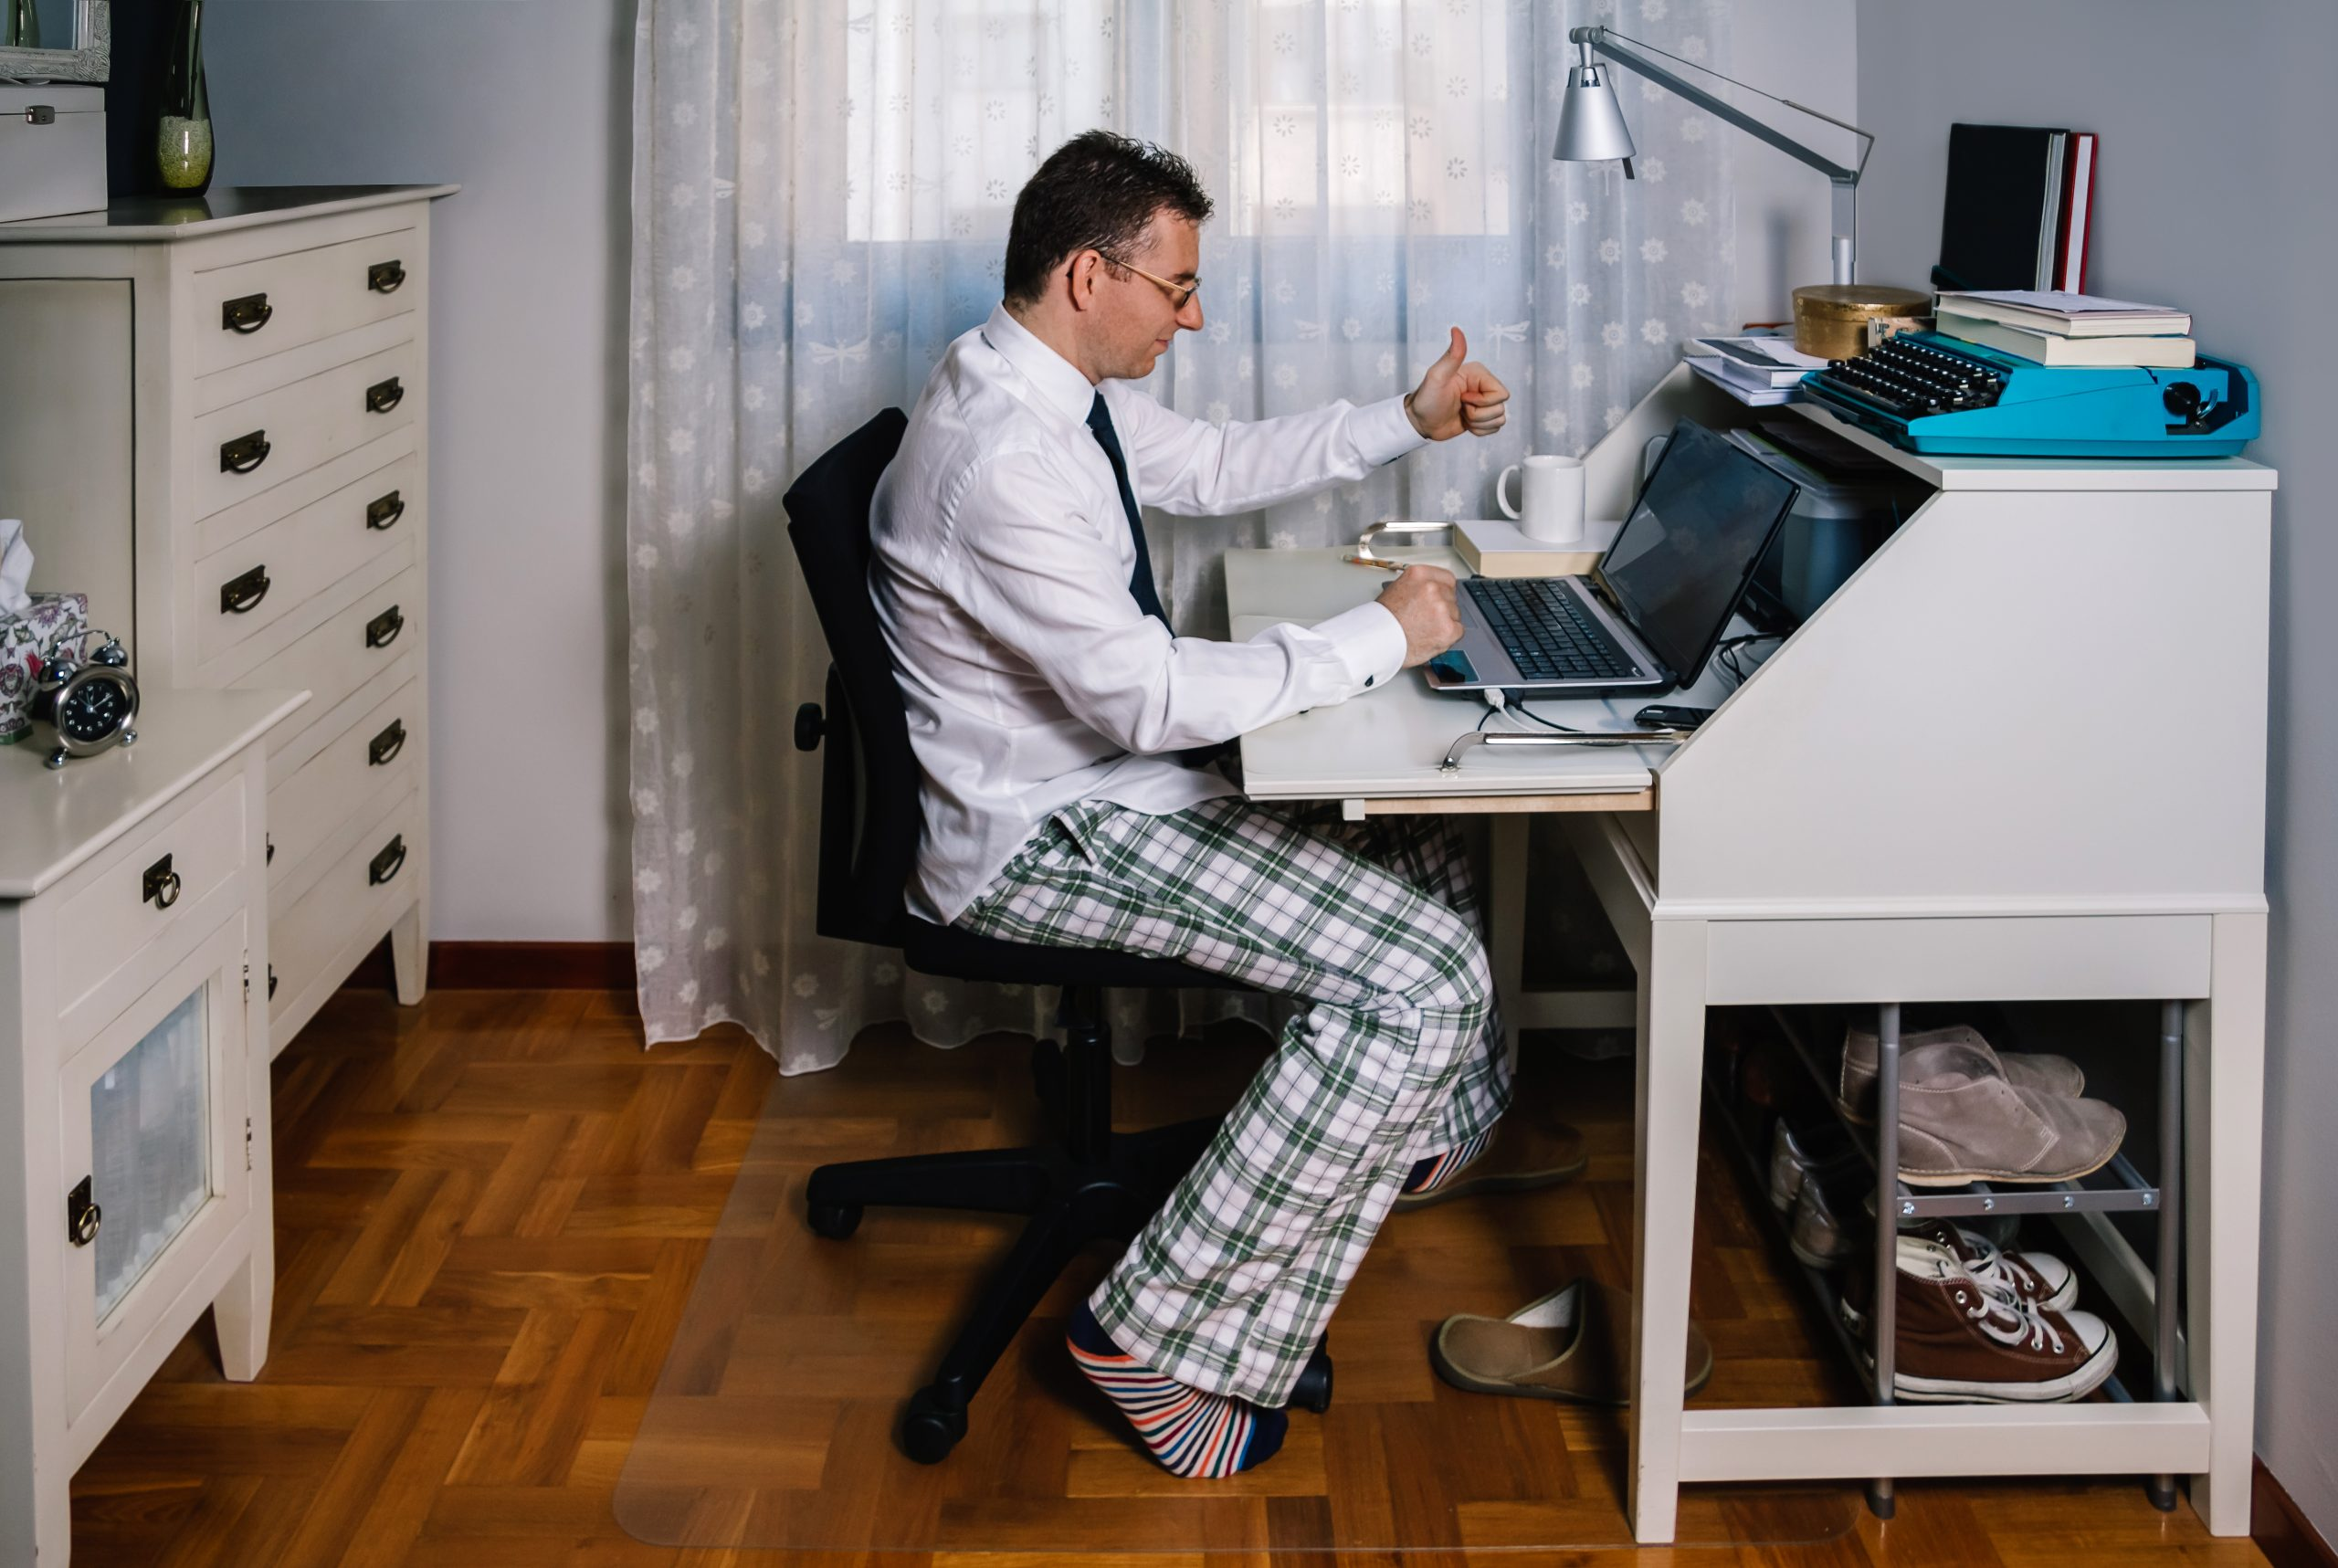 Man at desk in pajams and shirt and tie